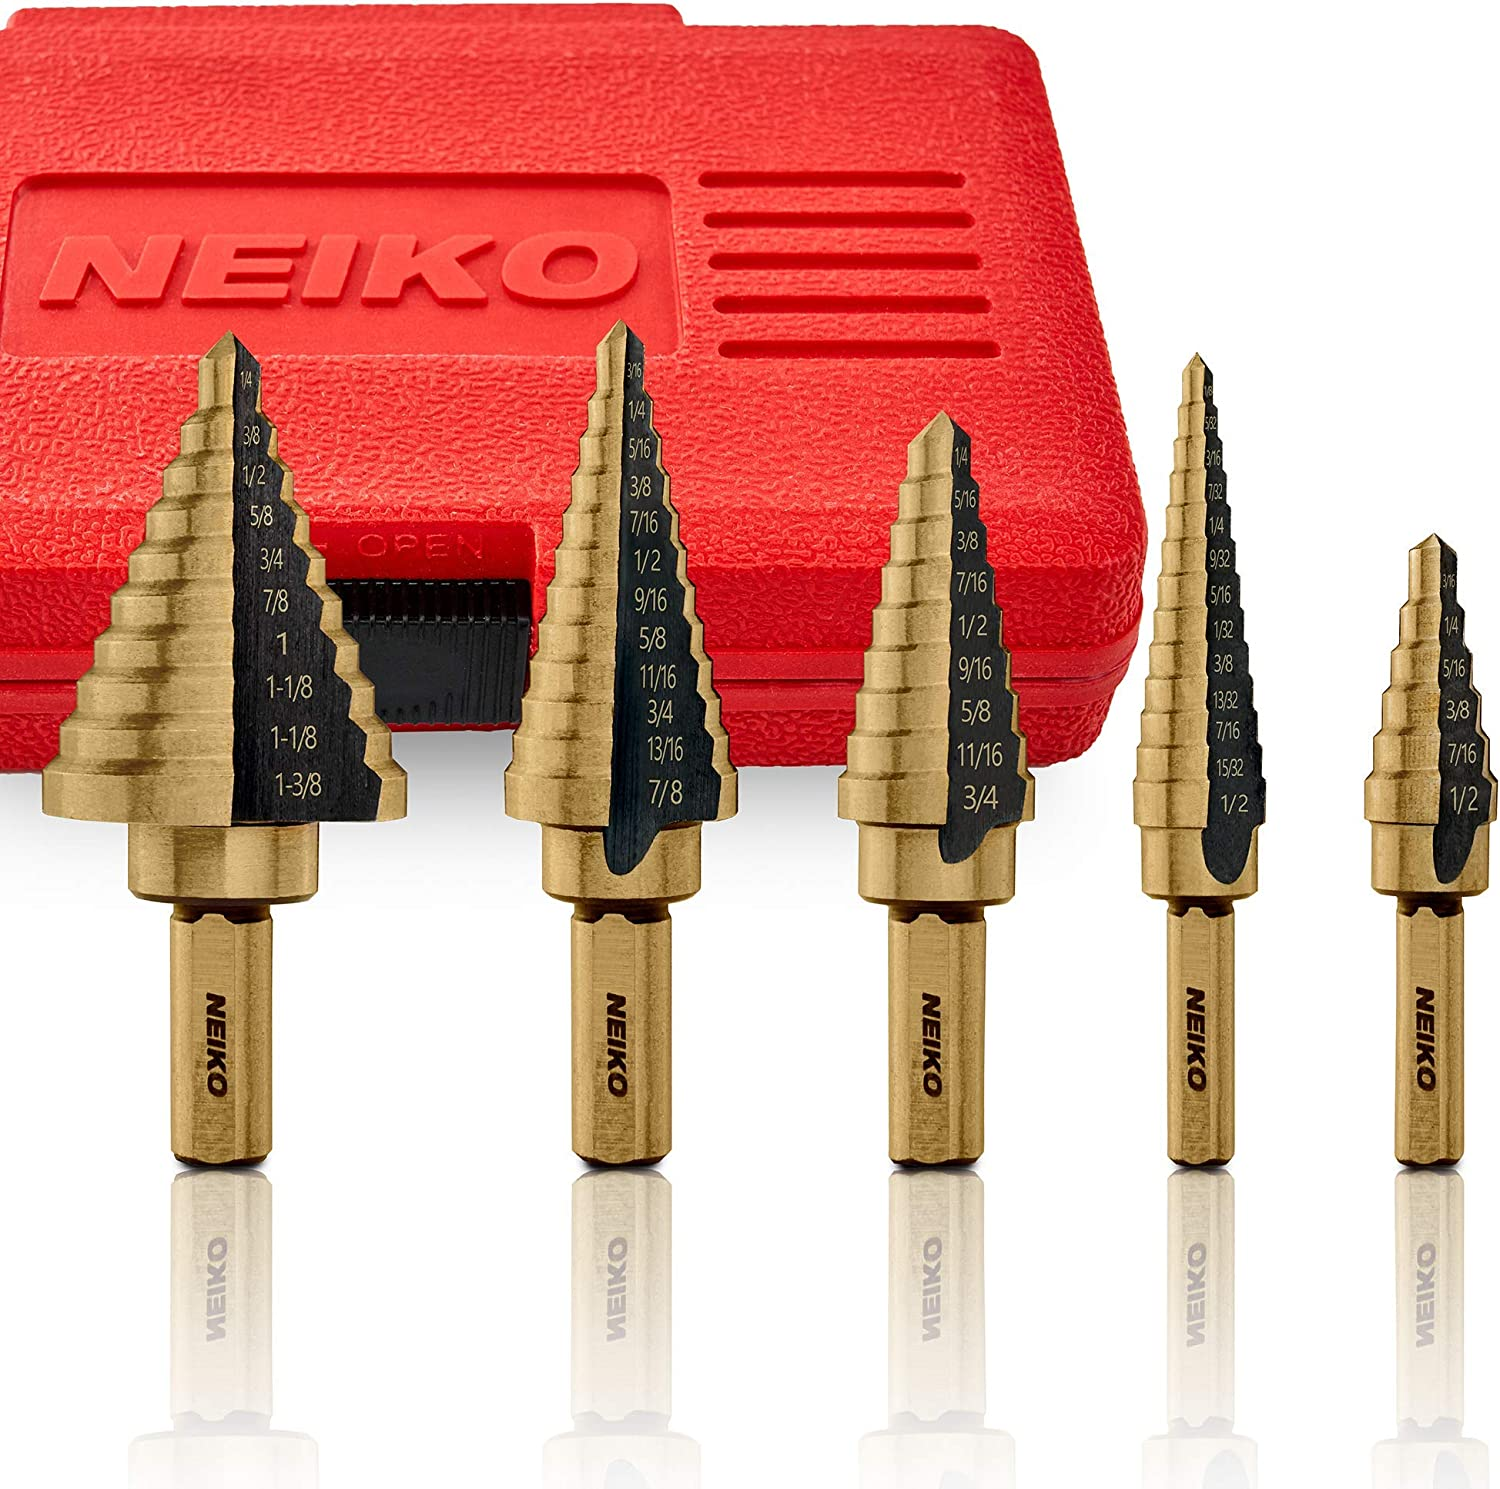 9 PC Neiko Step Bit Set 93 Sizes SAE Standard